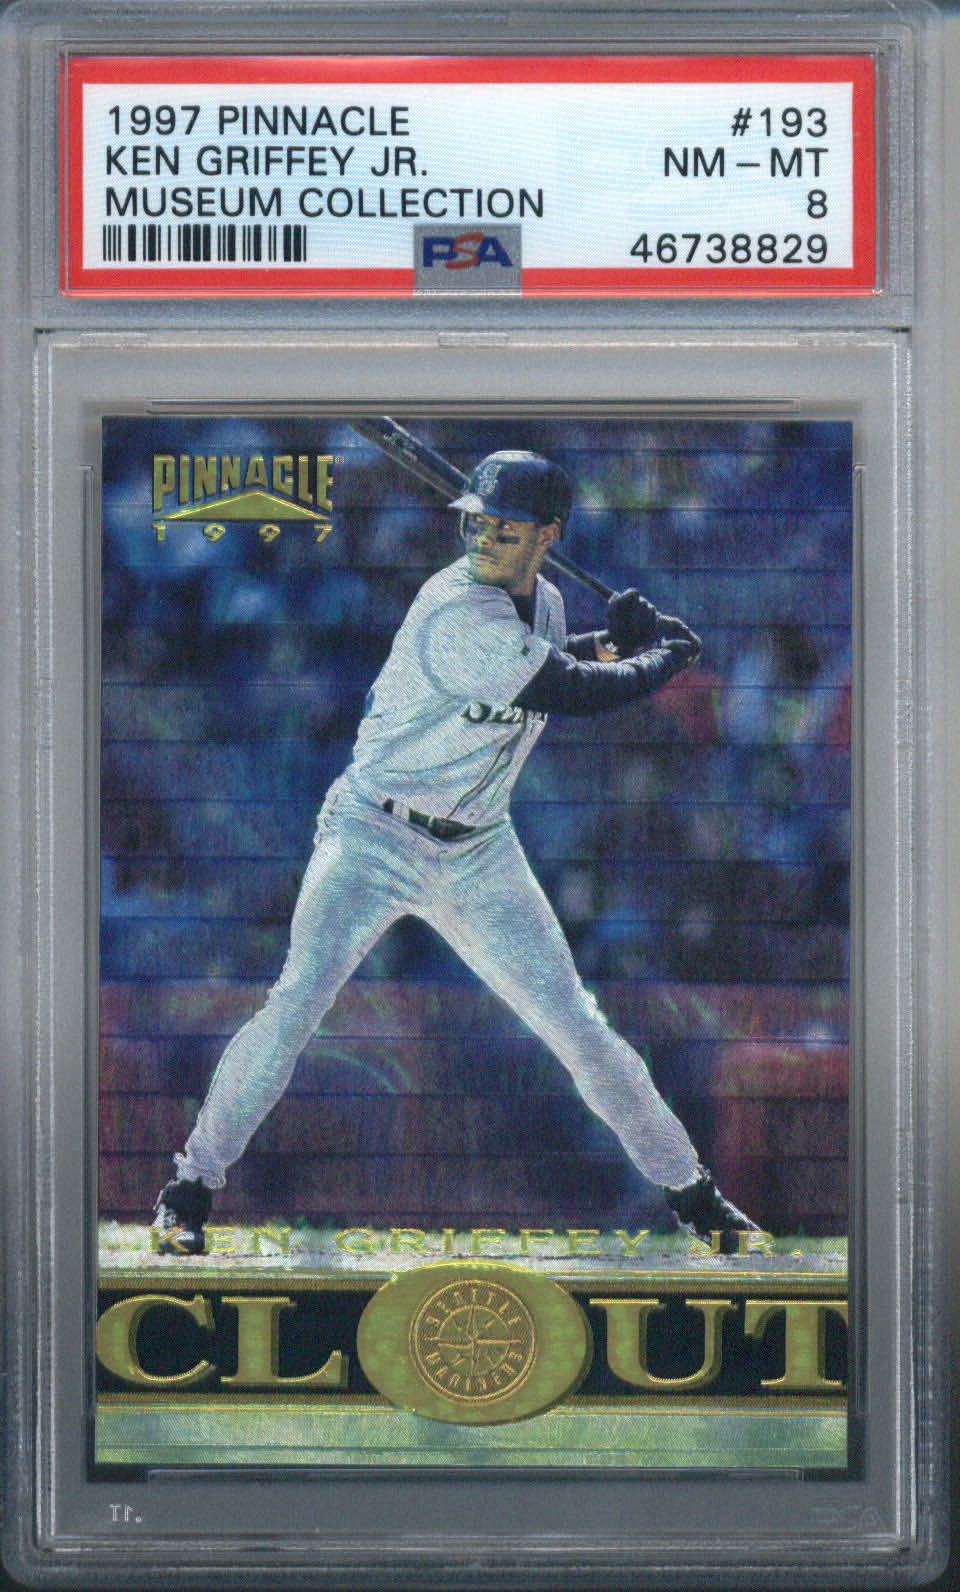 1997 Pinnacle Museum Collection #193 Ken Griffey Jr. PSA 8